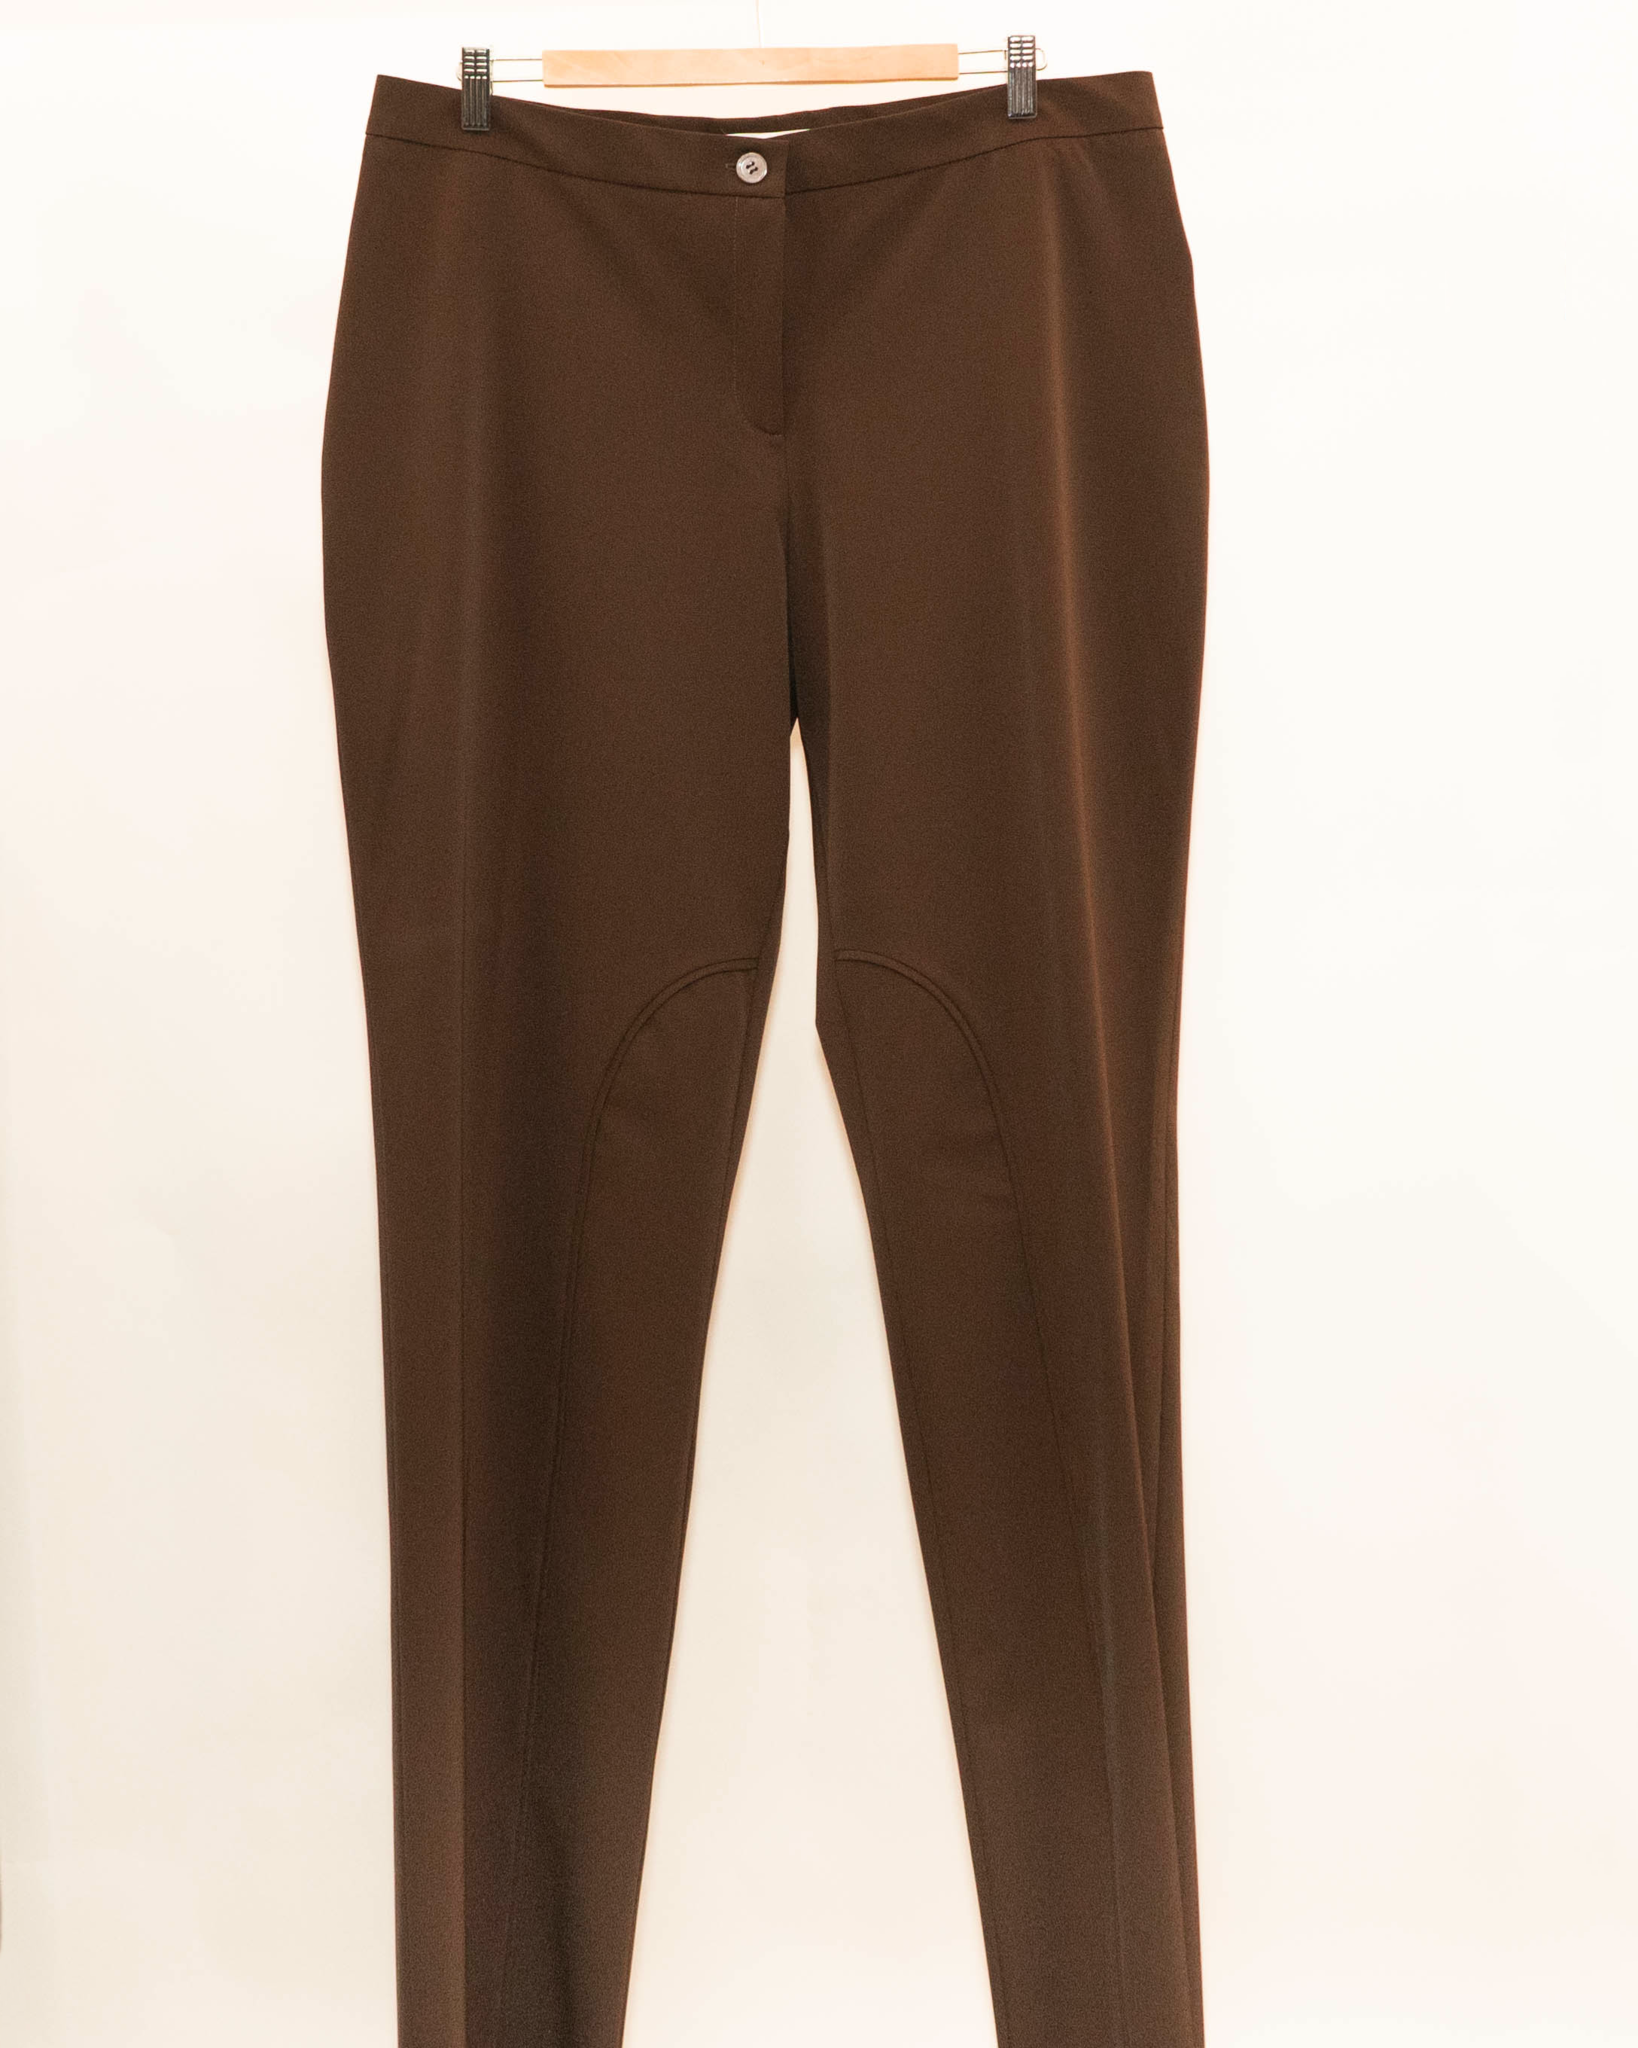 LIZA Trousers in Polyester-2